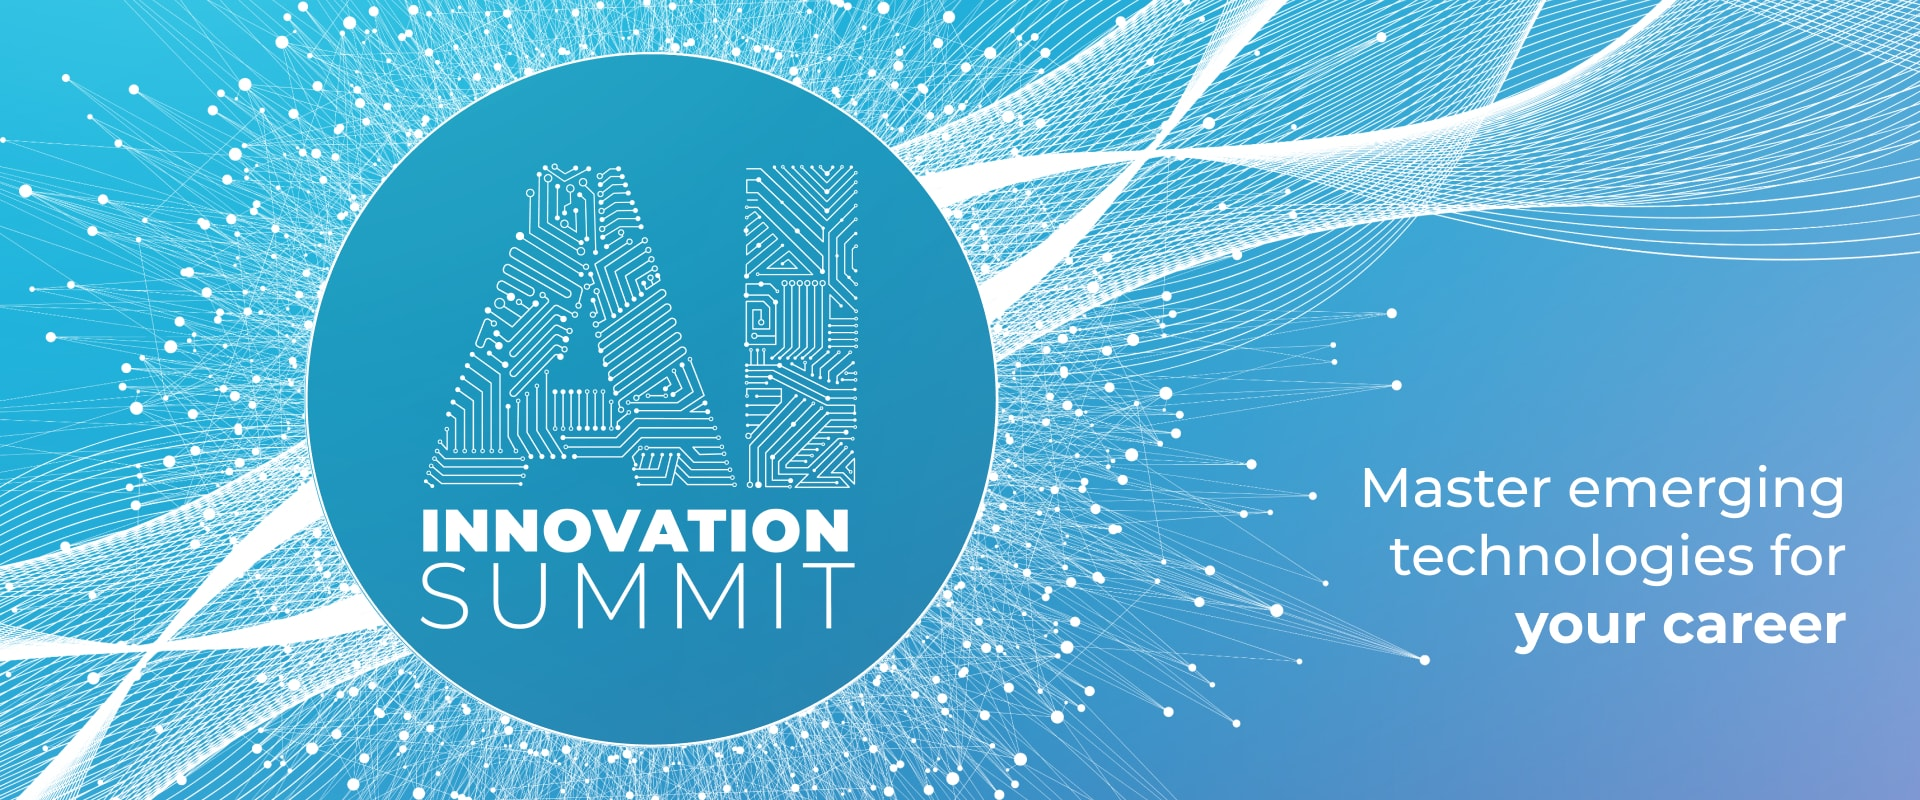 2019 AI INNOVATION SUMMIT